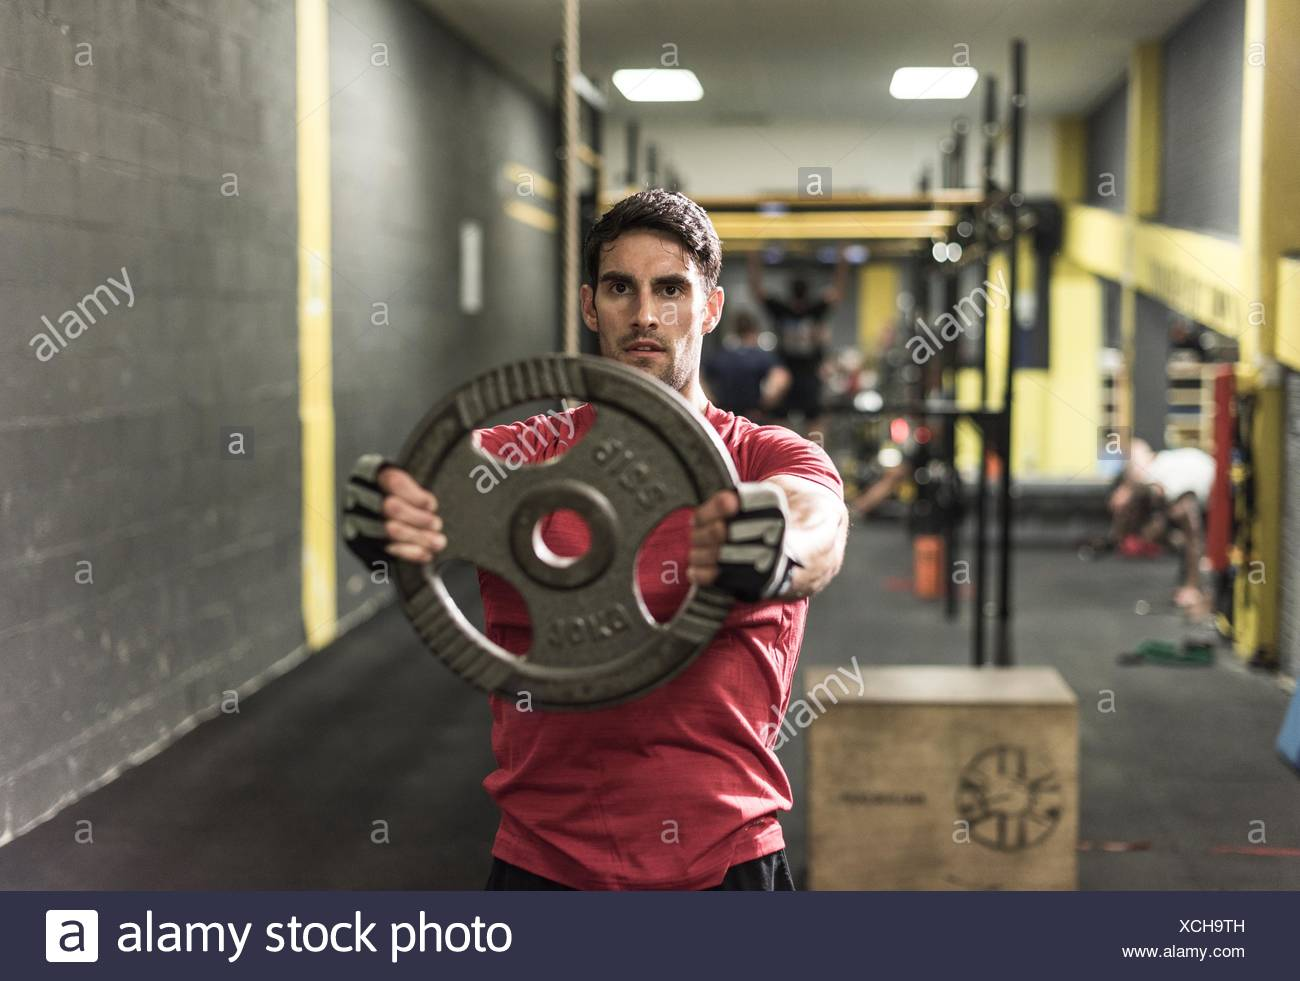 Mid adult man working out at gym Photo Stock